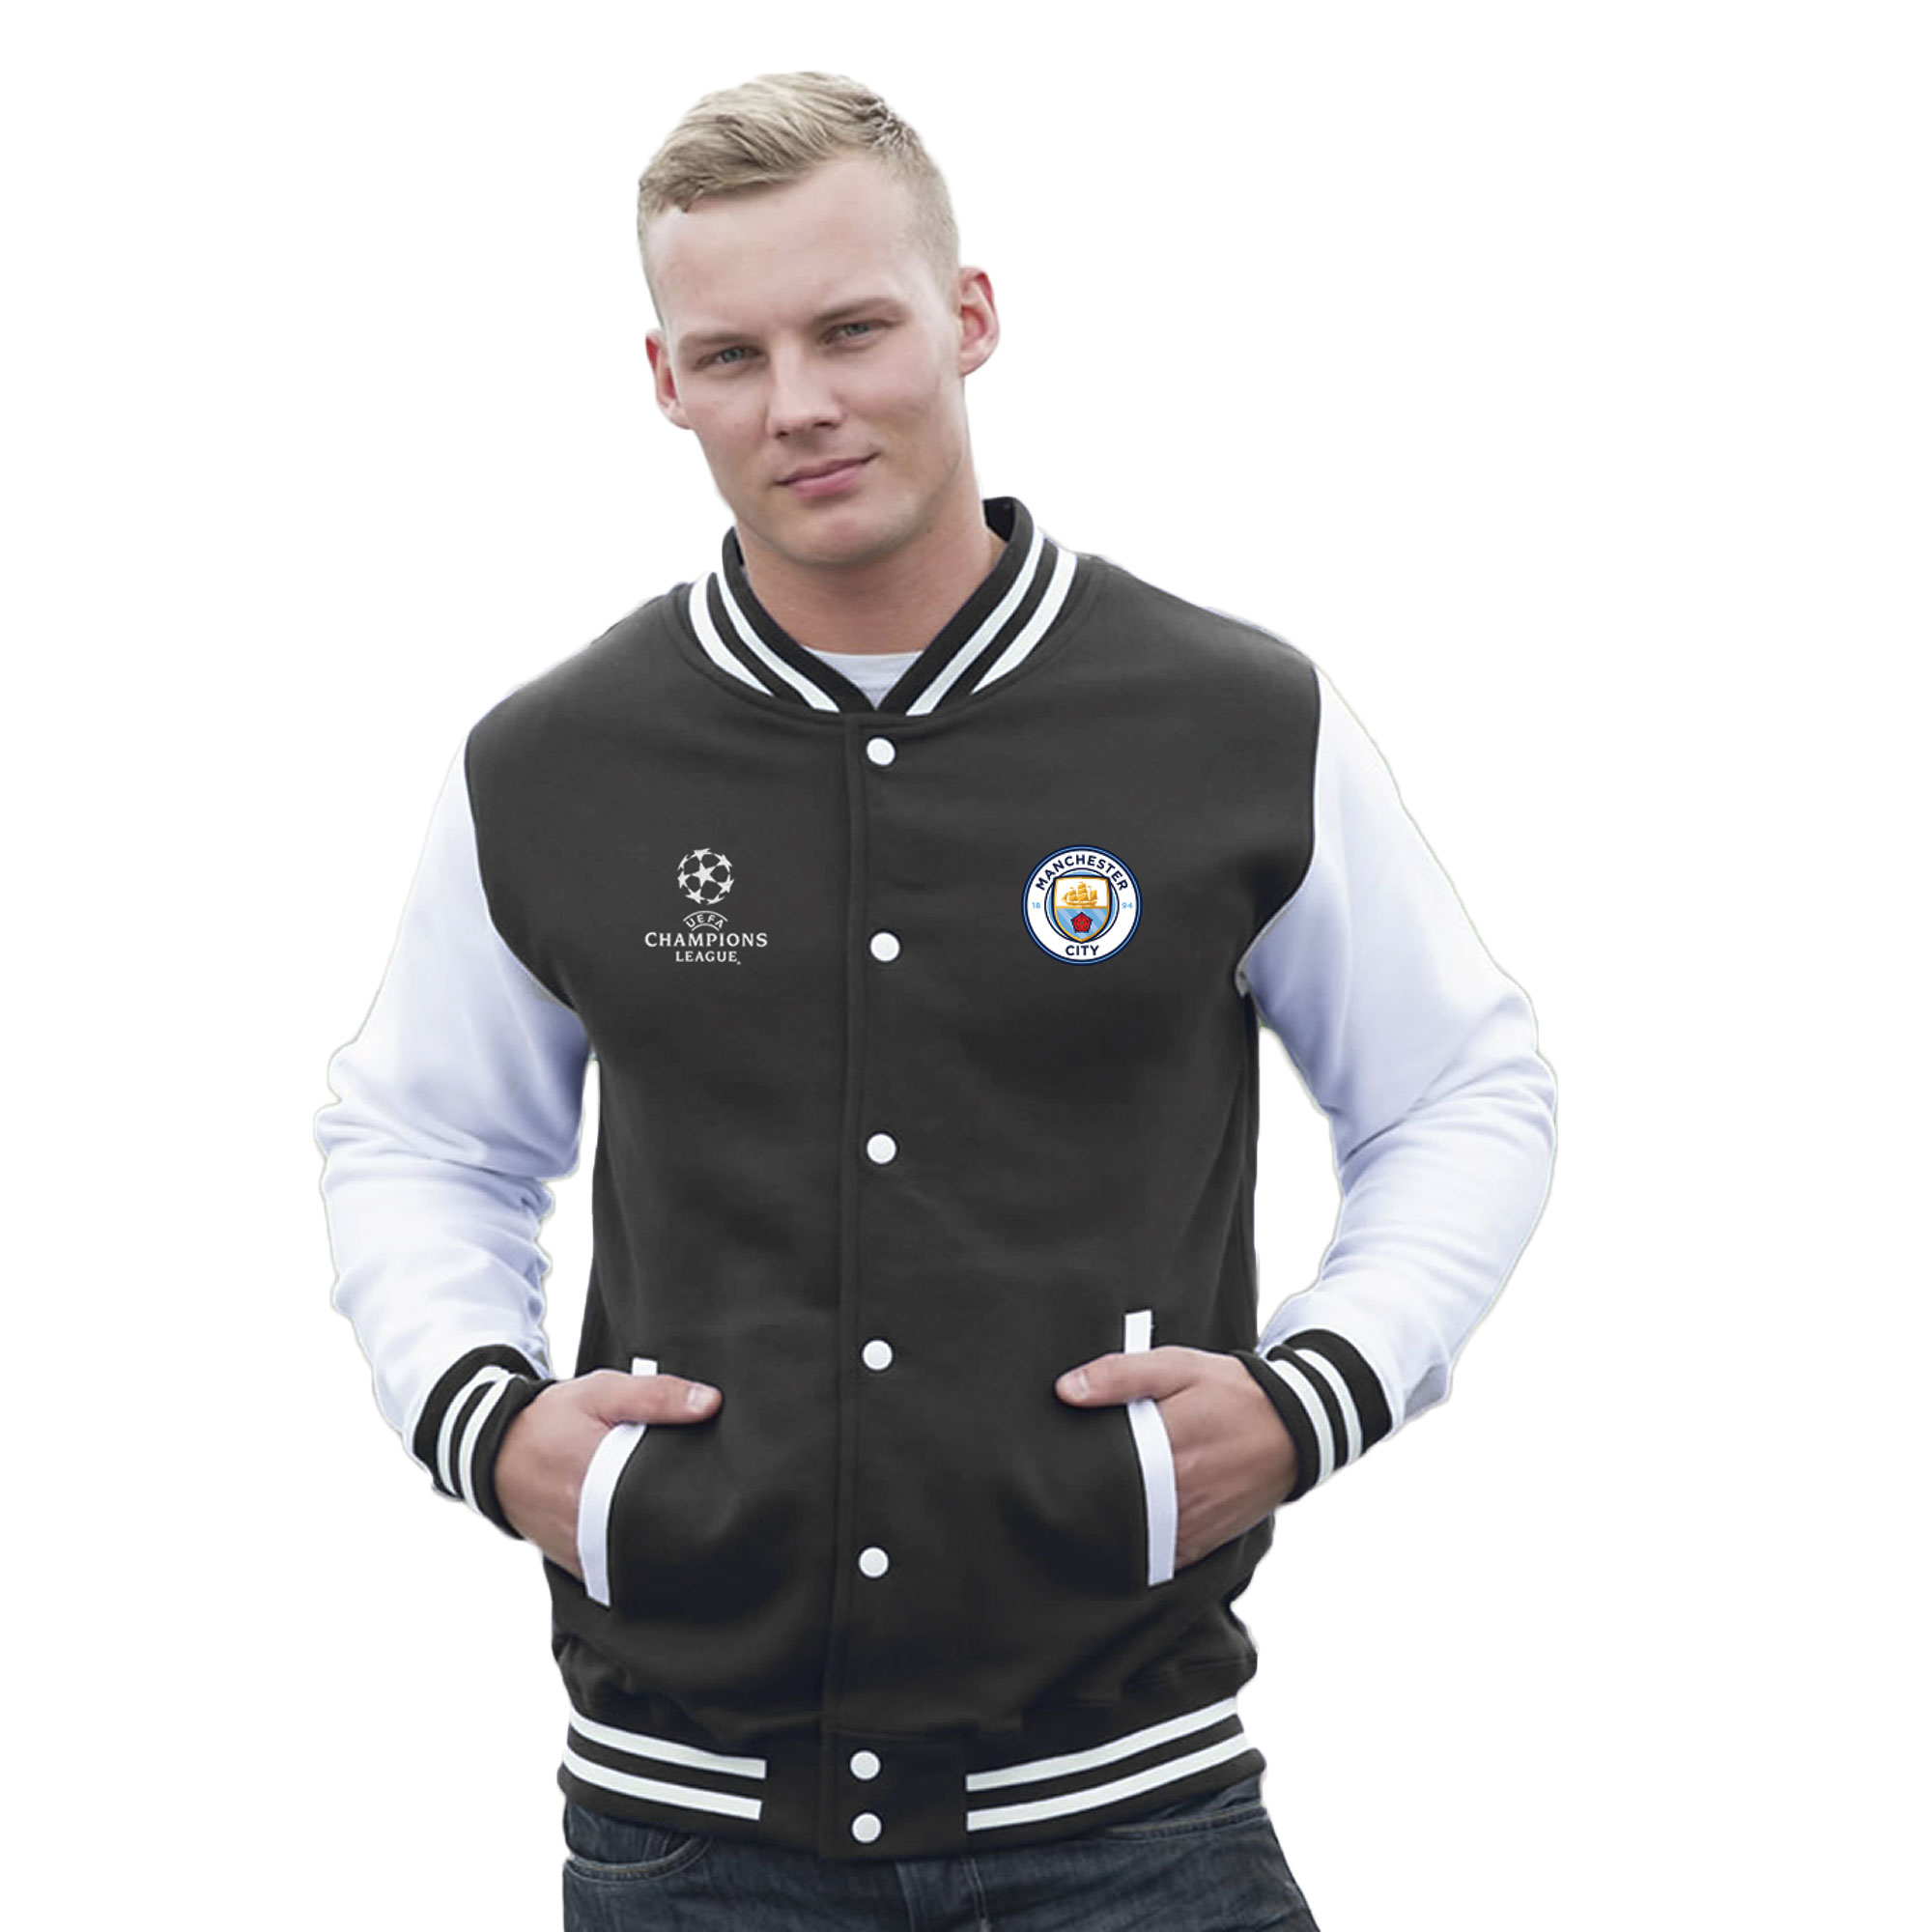 Manchester City UEFA Champions League Varsity Jacket - Black - Mens